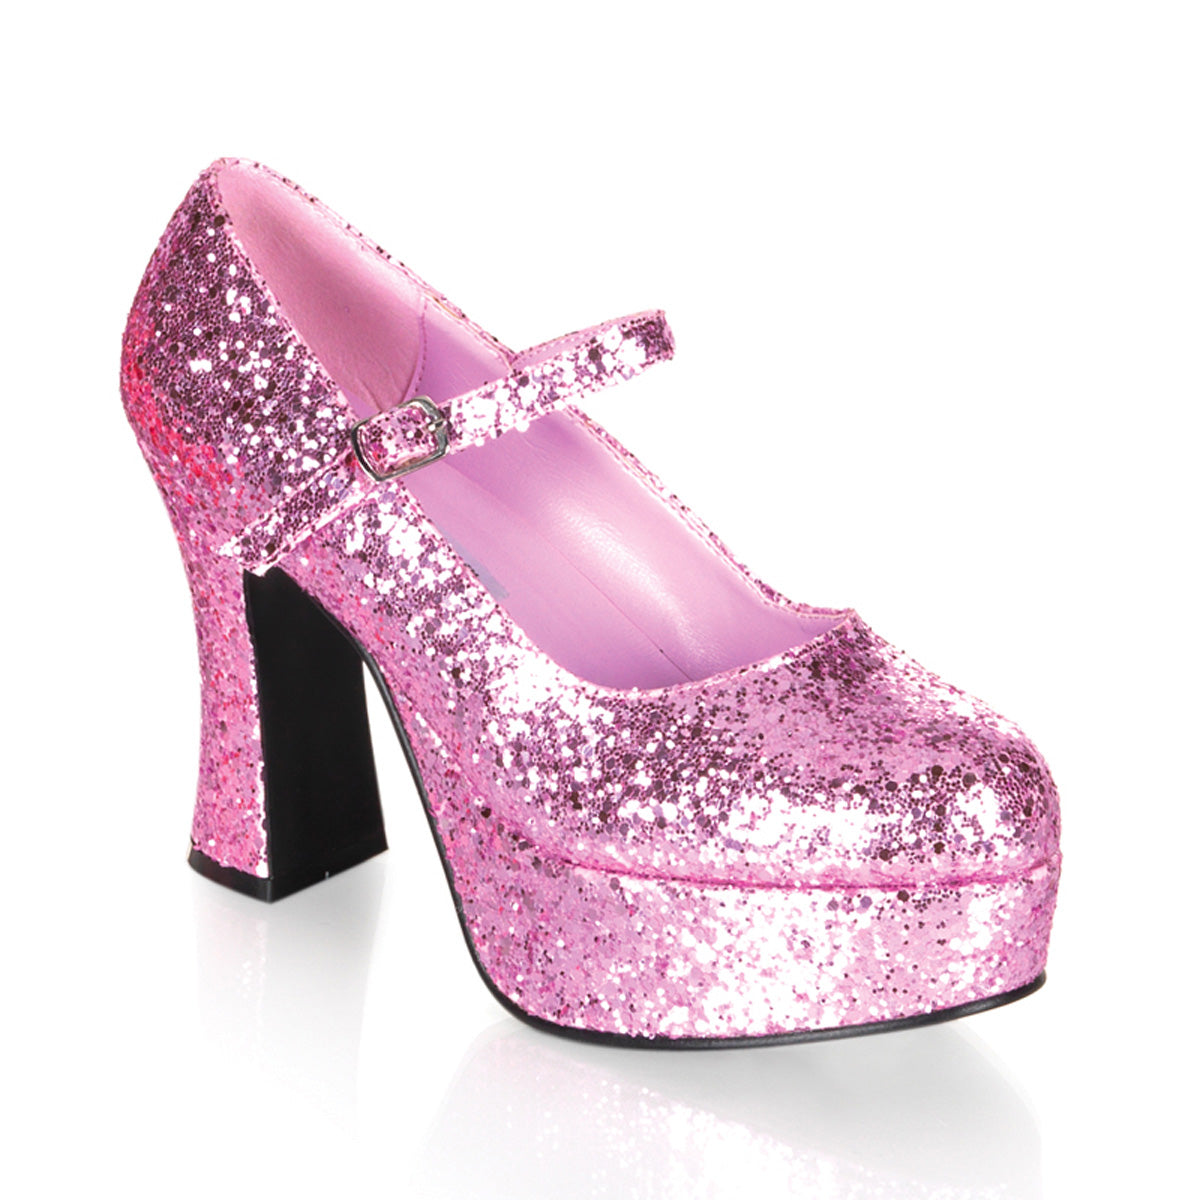 "4"" Heel, 1 1/2"" PF, Heel Mary Jane Pump w/Glitter"